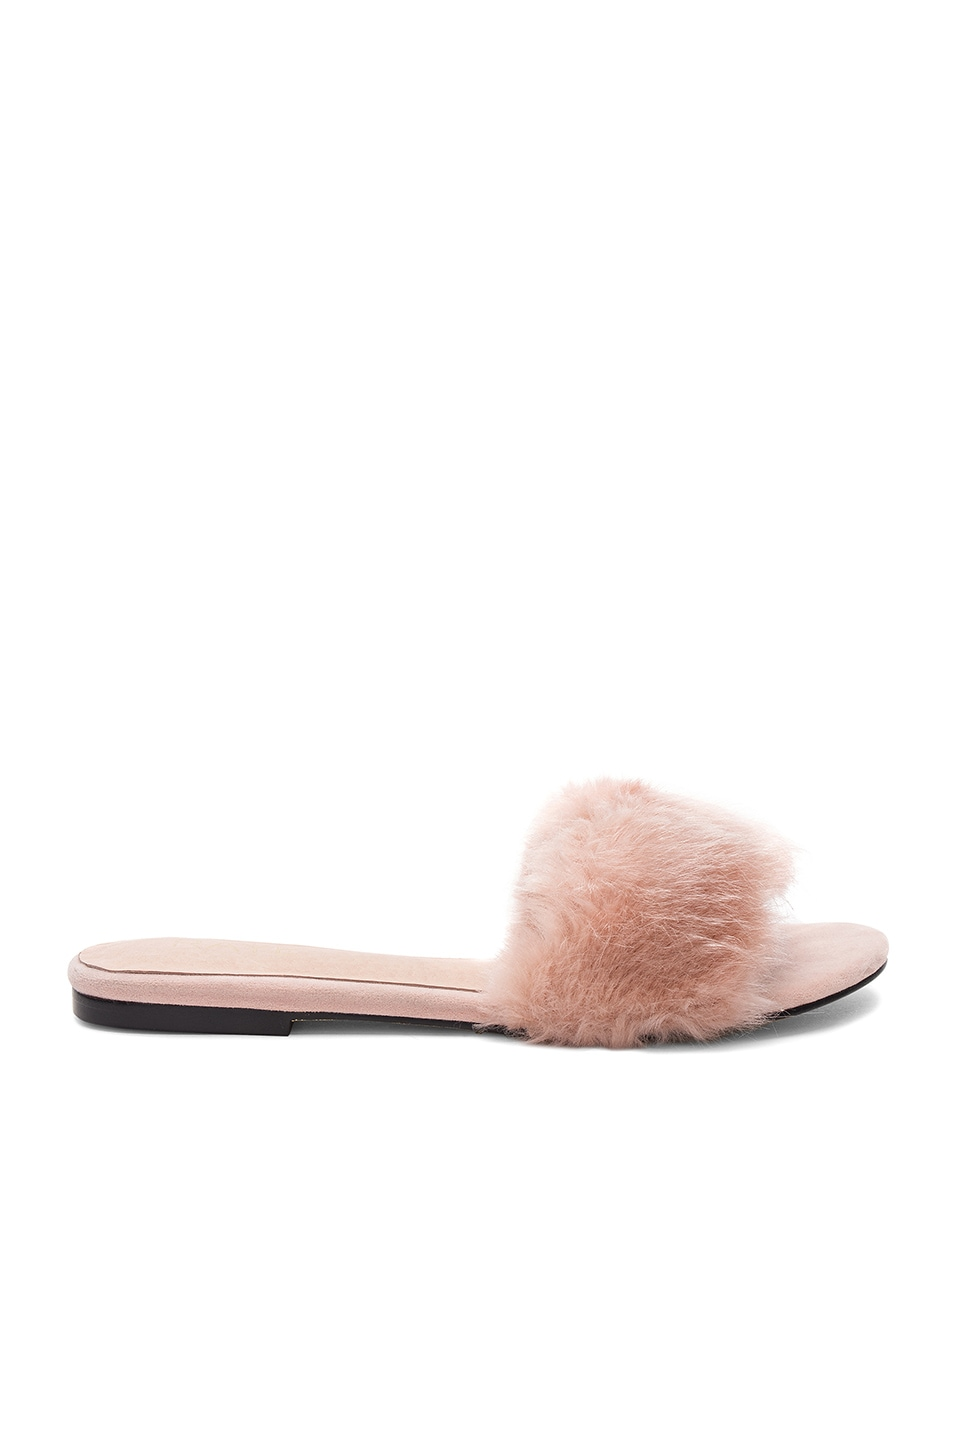 RAYE x REVOLVE Sawtelle Faux Fur Slide in Blush